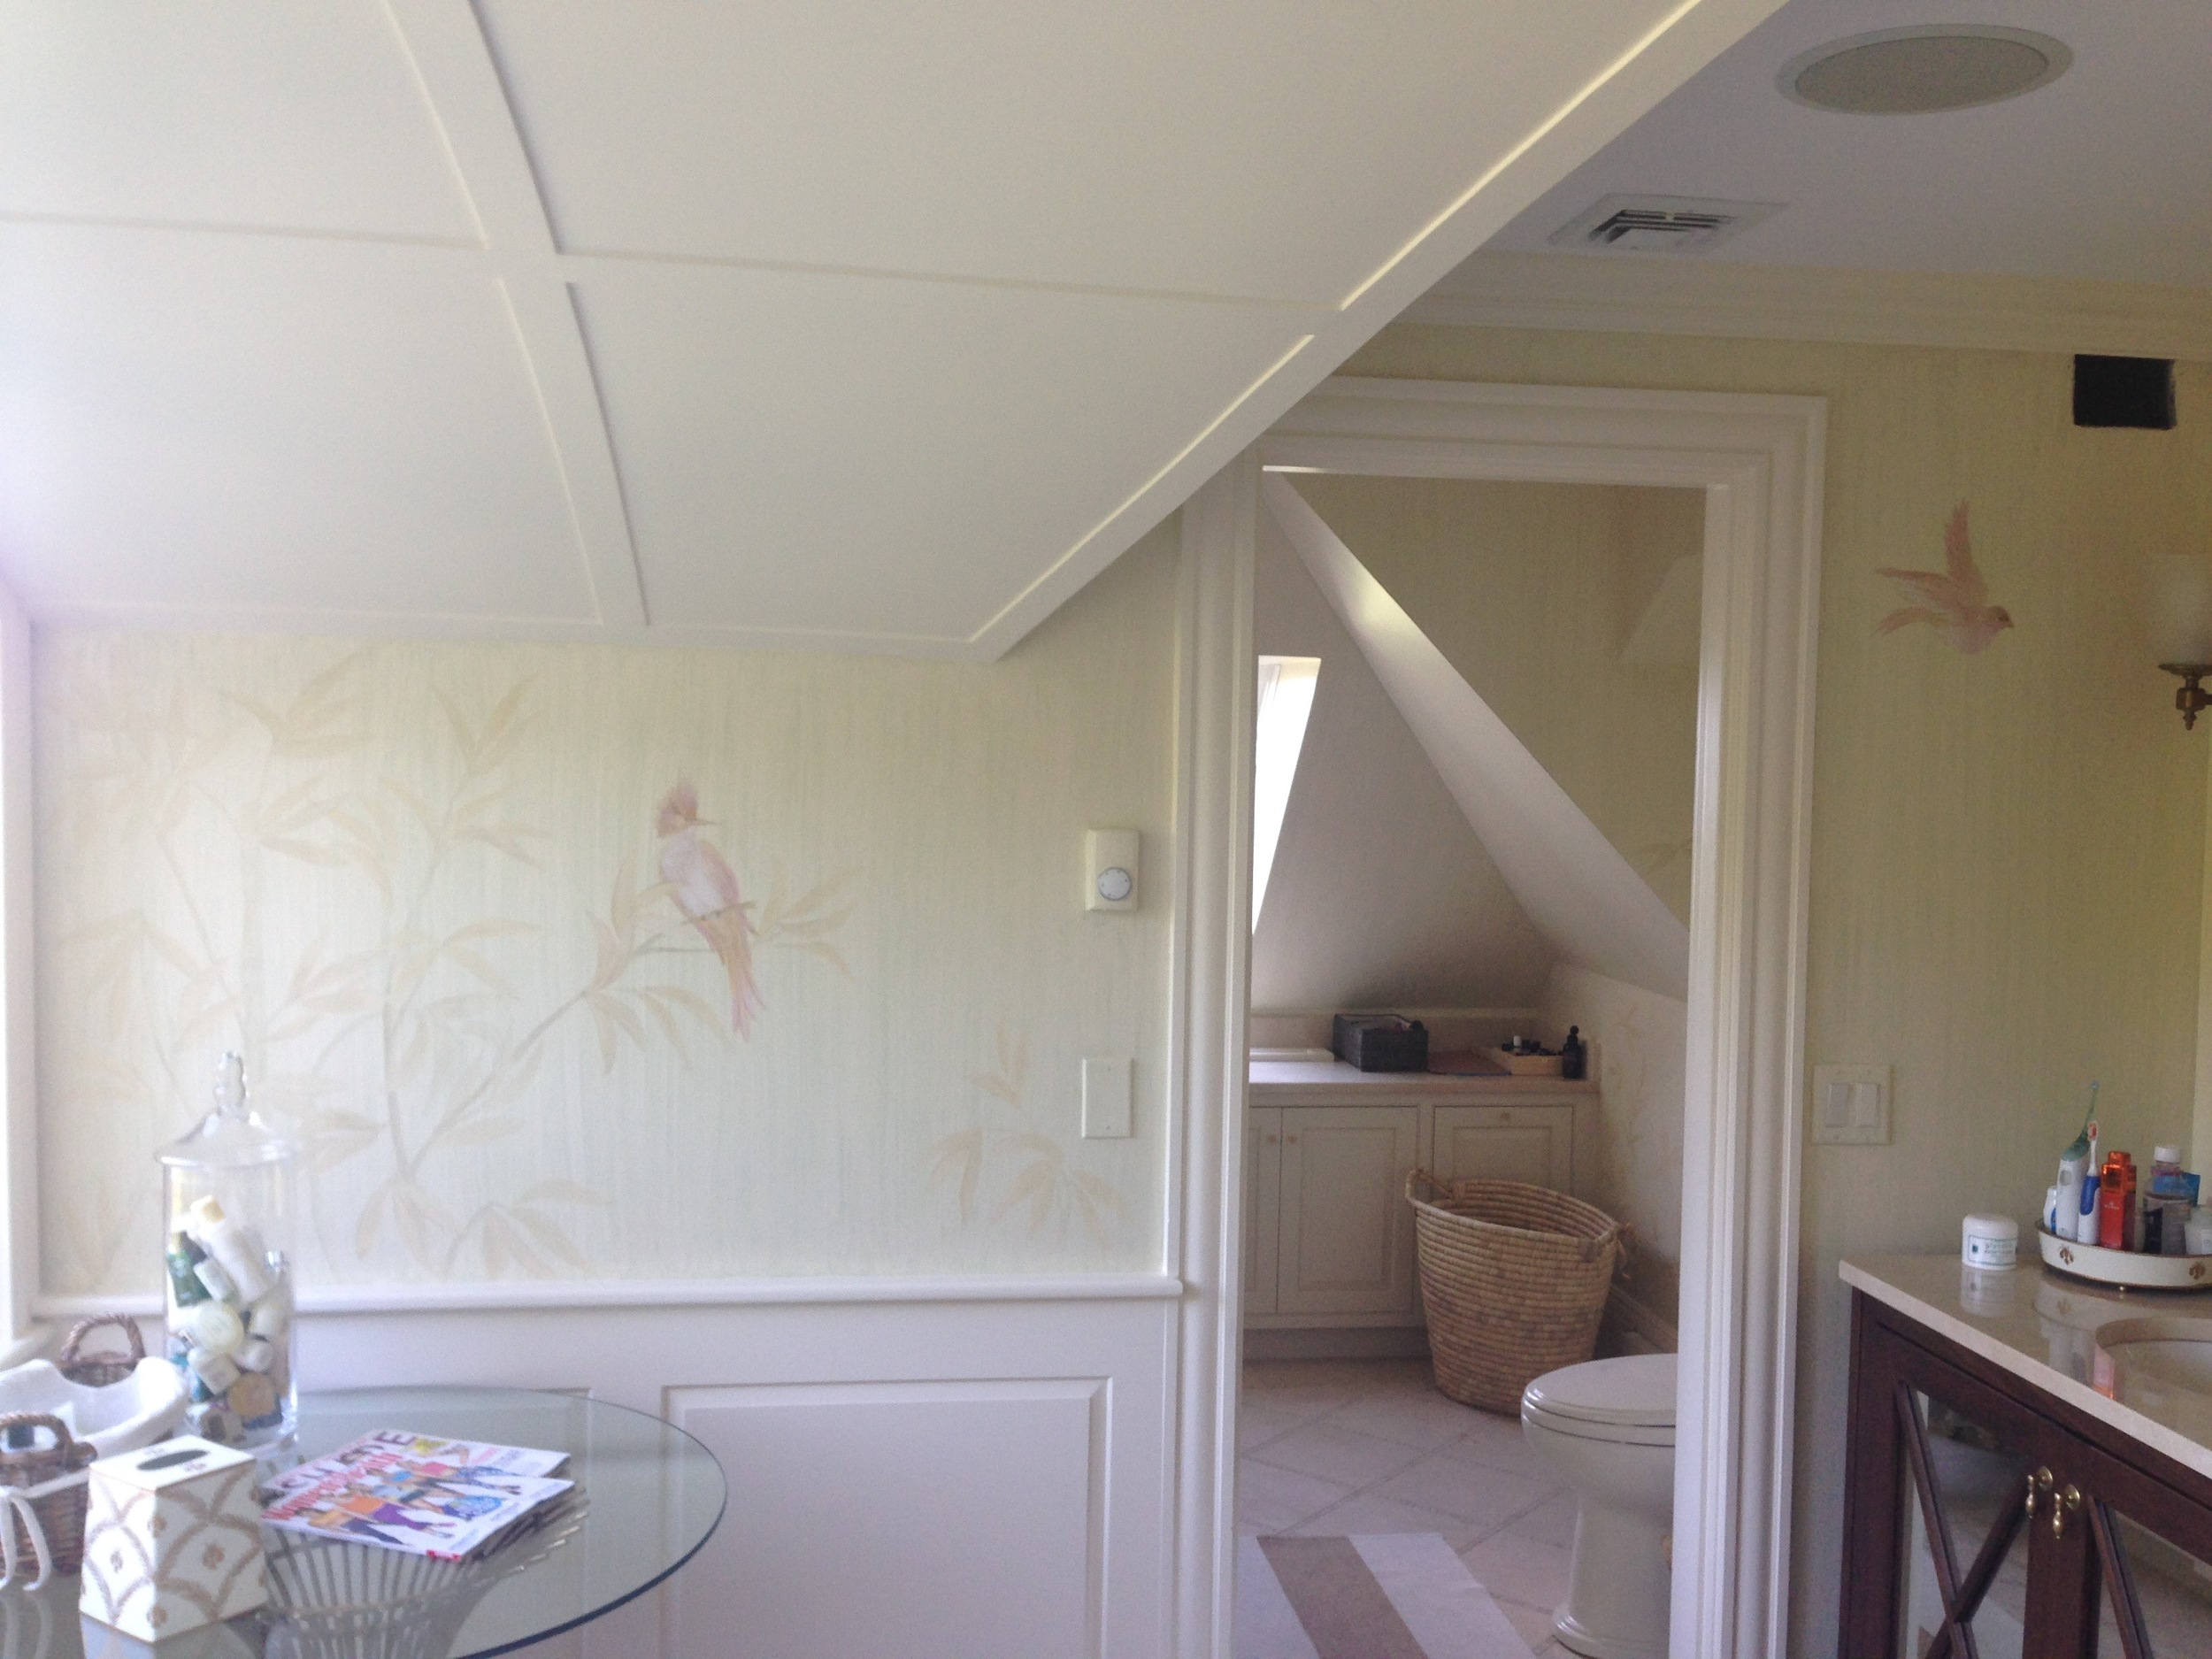 Master bathroom - another view